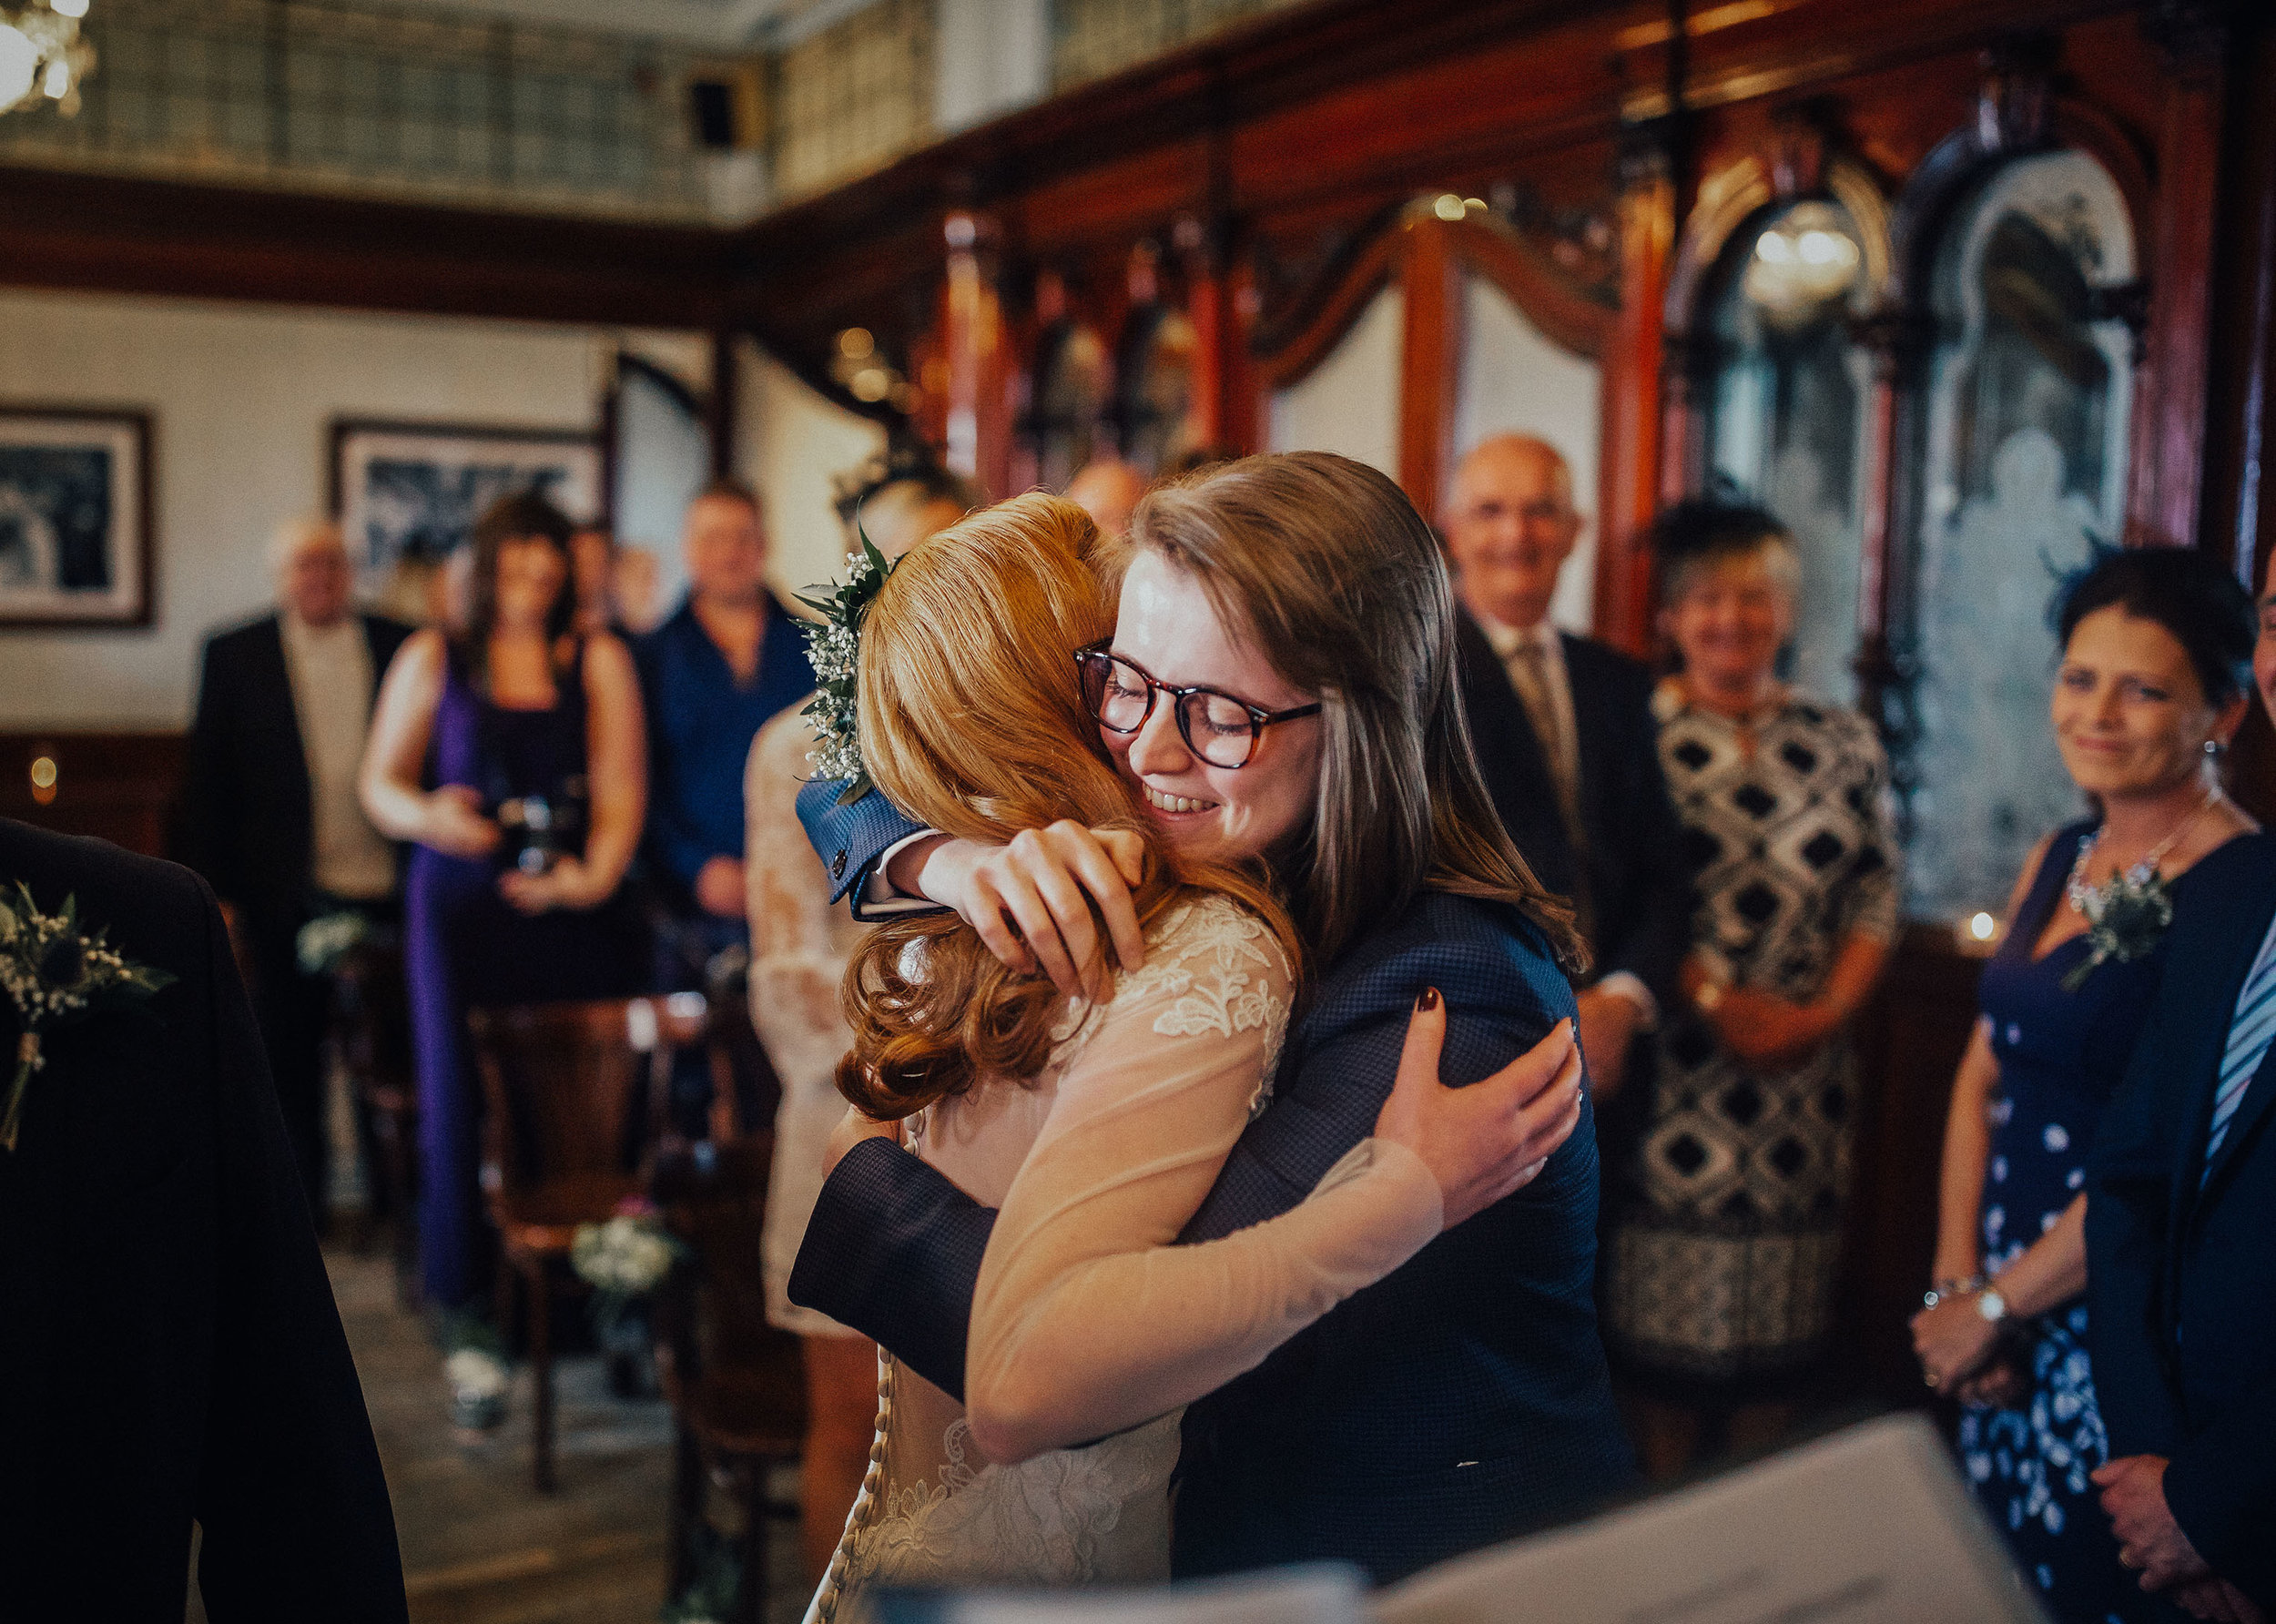 SAME_SEX_WEDDING_PHOTOGRAPHER_SLOANS_GLASGOW_PJ_PHILLIPS_PHOTOGRAPHY_32.jpg